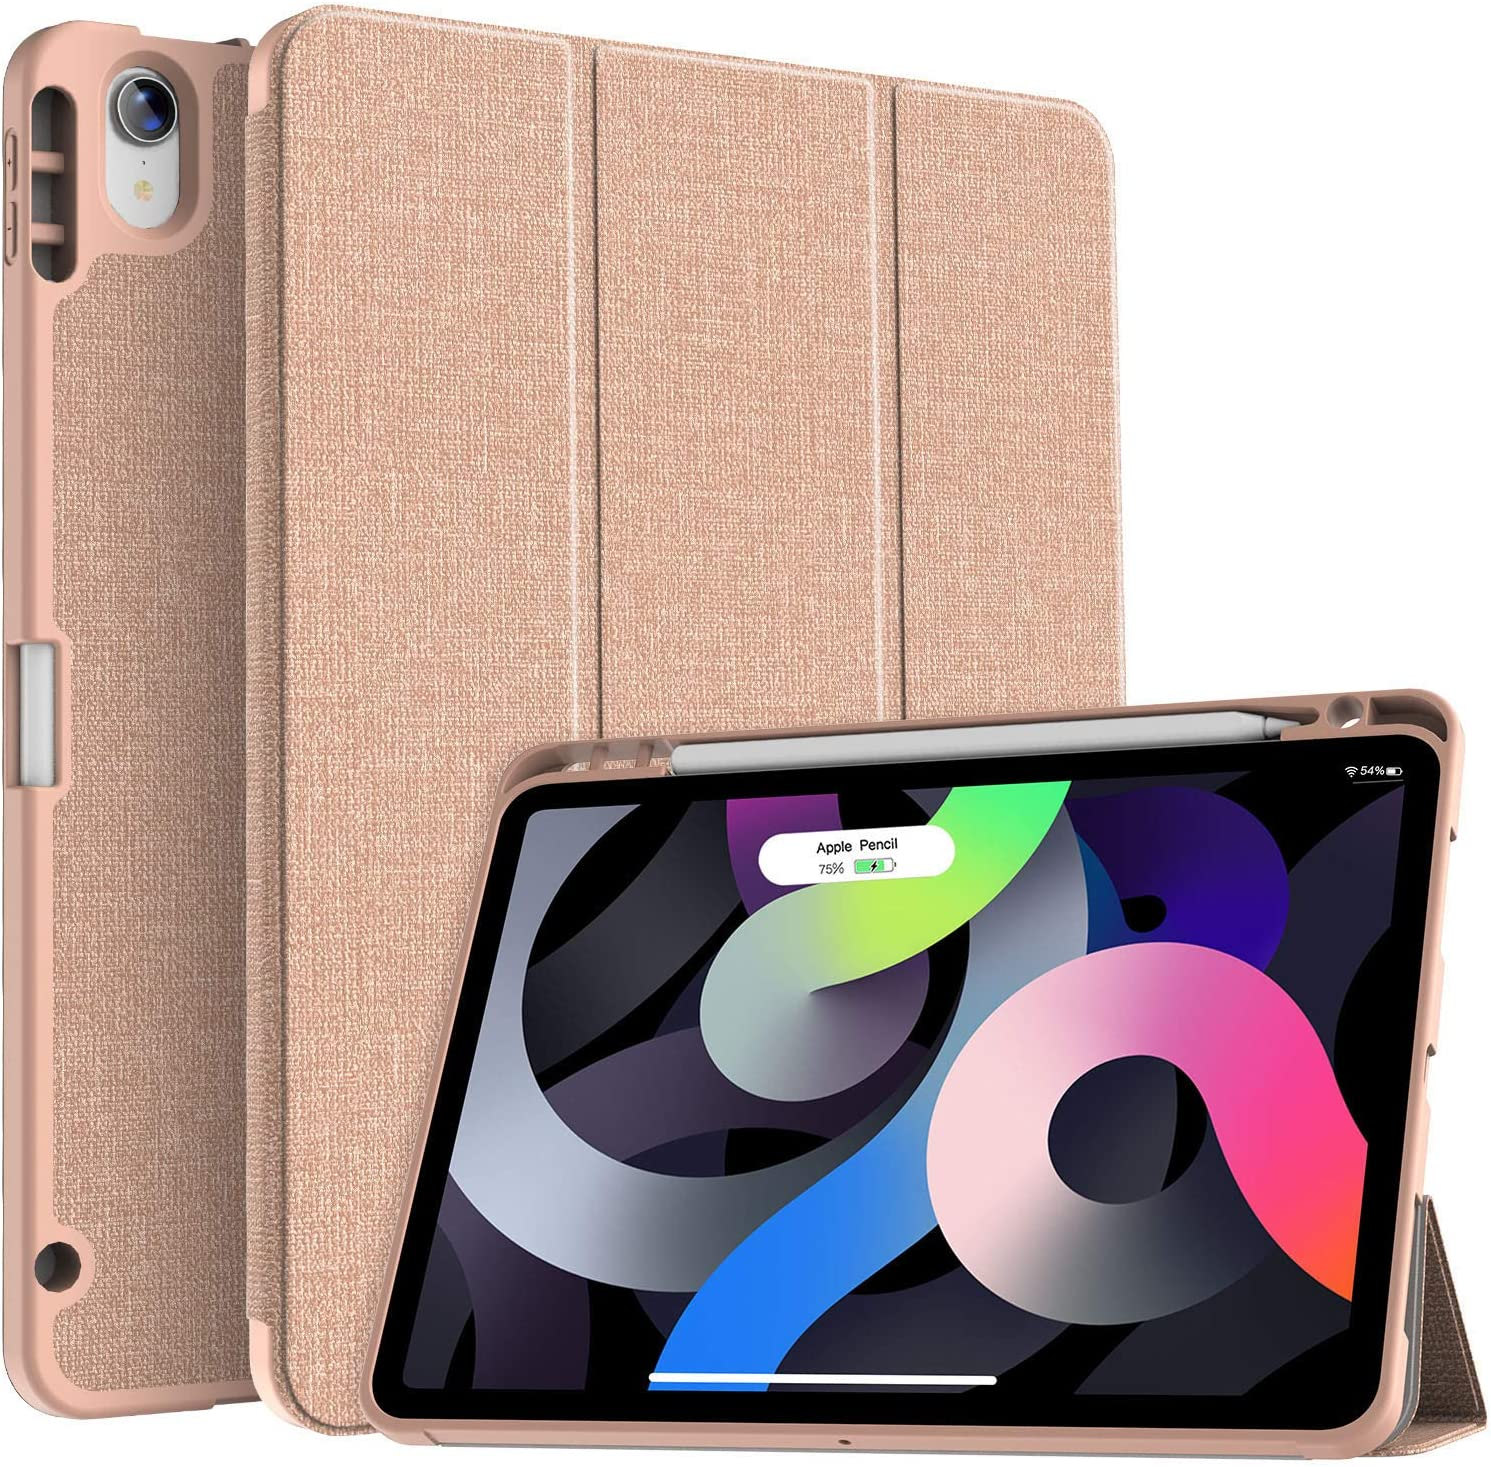 Soke iPad Air 4 Case 10.9 Inch 2020 with Pencil Holder - [Full Body Protection + Apple Pencil Charging], Soft TPU Back Cover for 2020 New iPad Air 4th Generation,Rose Gold